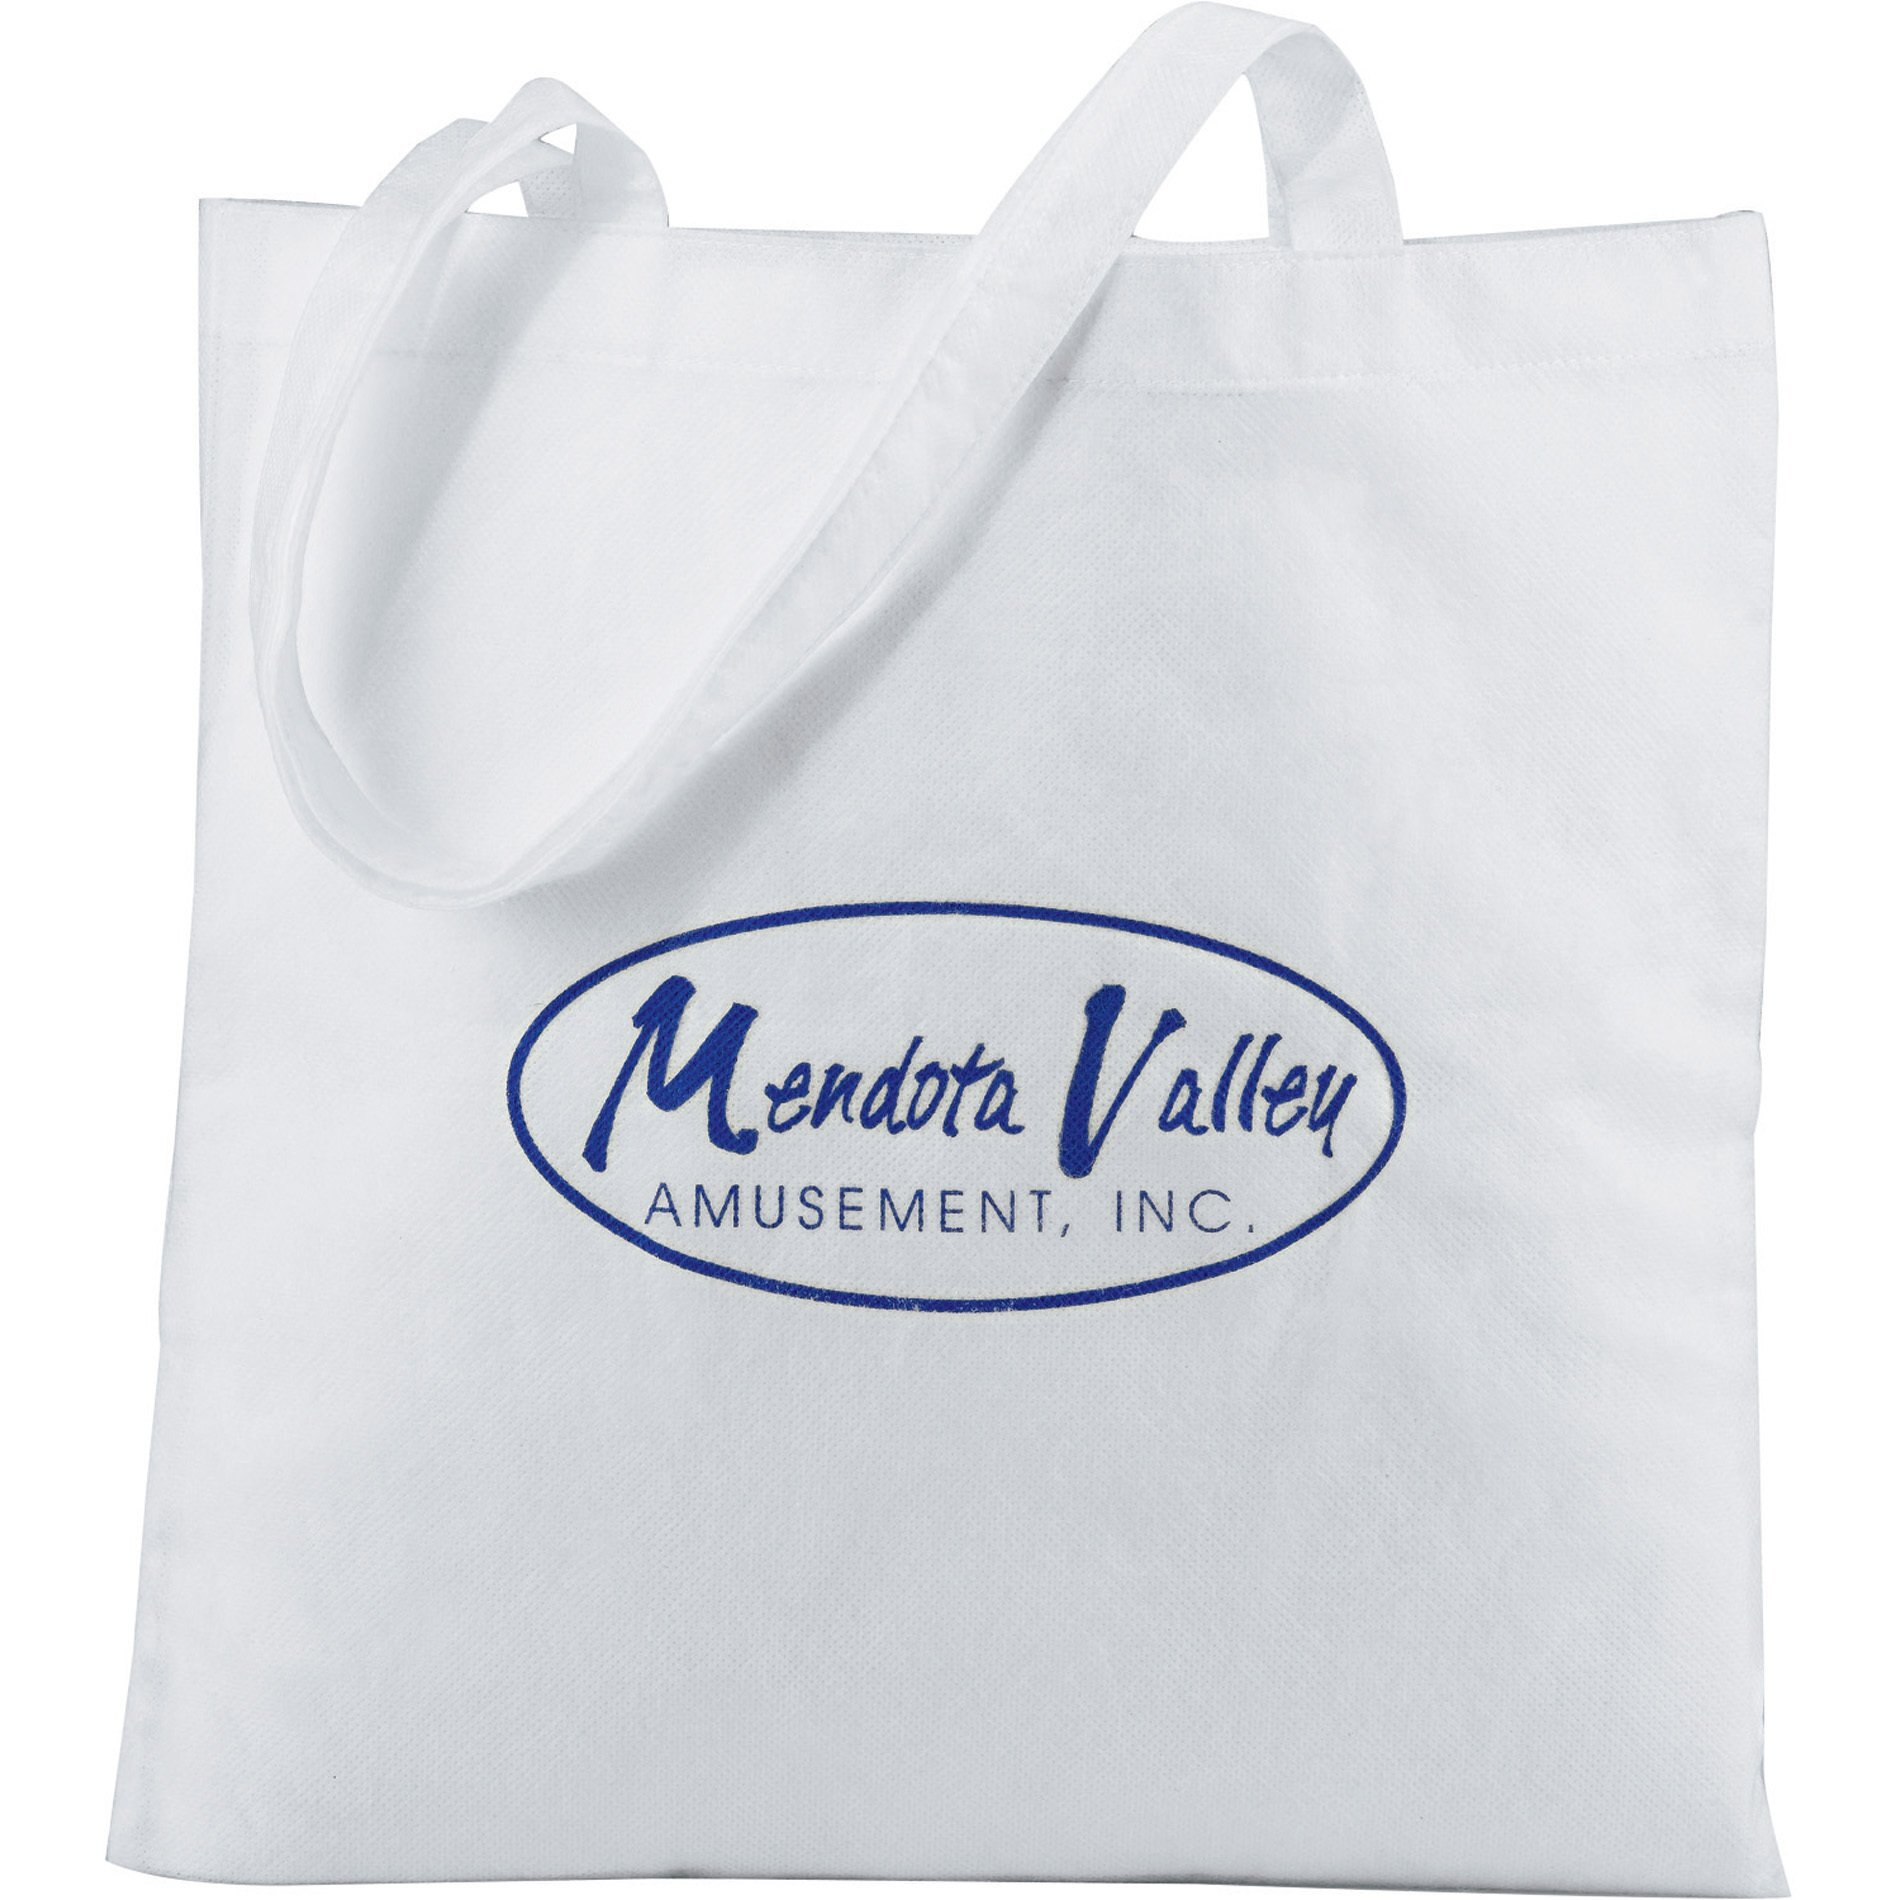 Recyclable Non-Woven Convention Tote